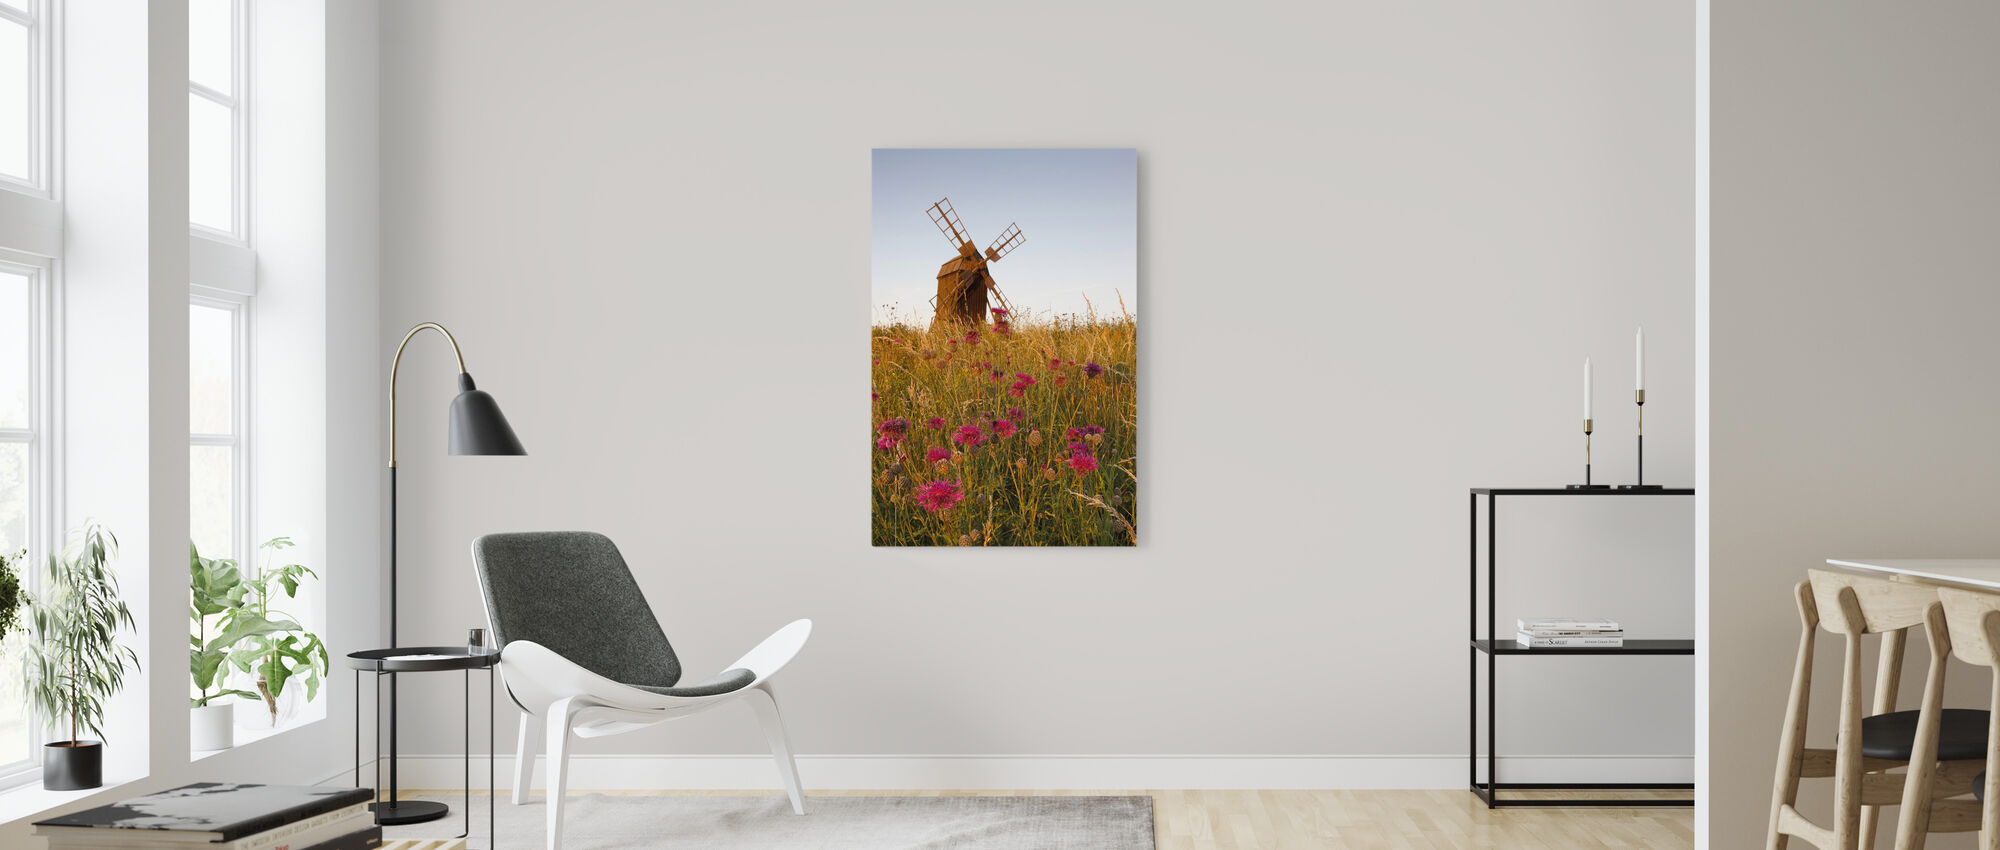 Grainy Windmill - Canvas print - Living Room